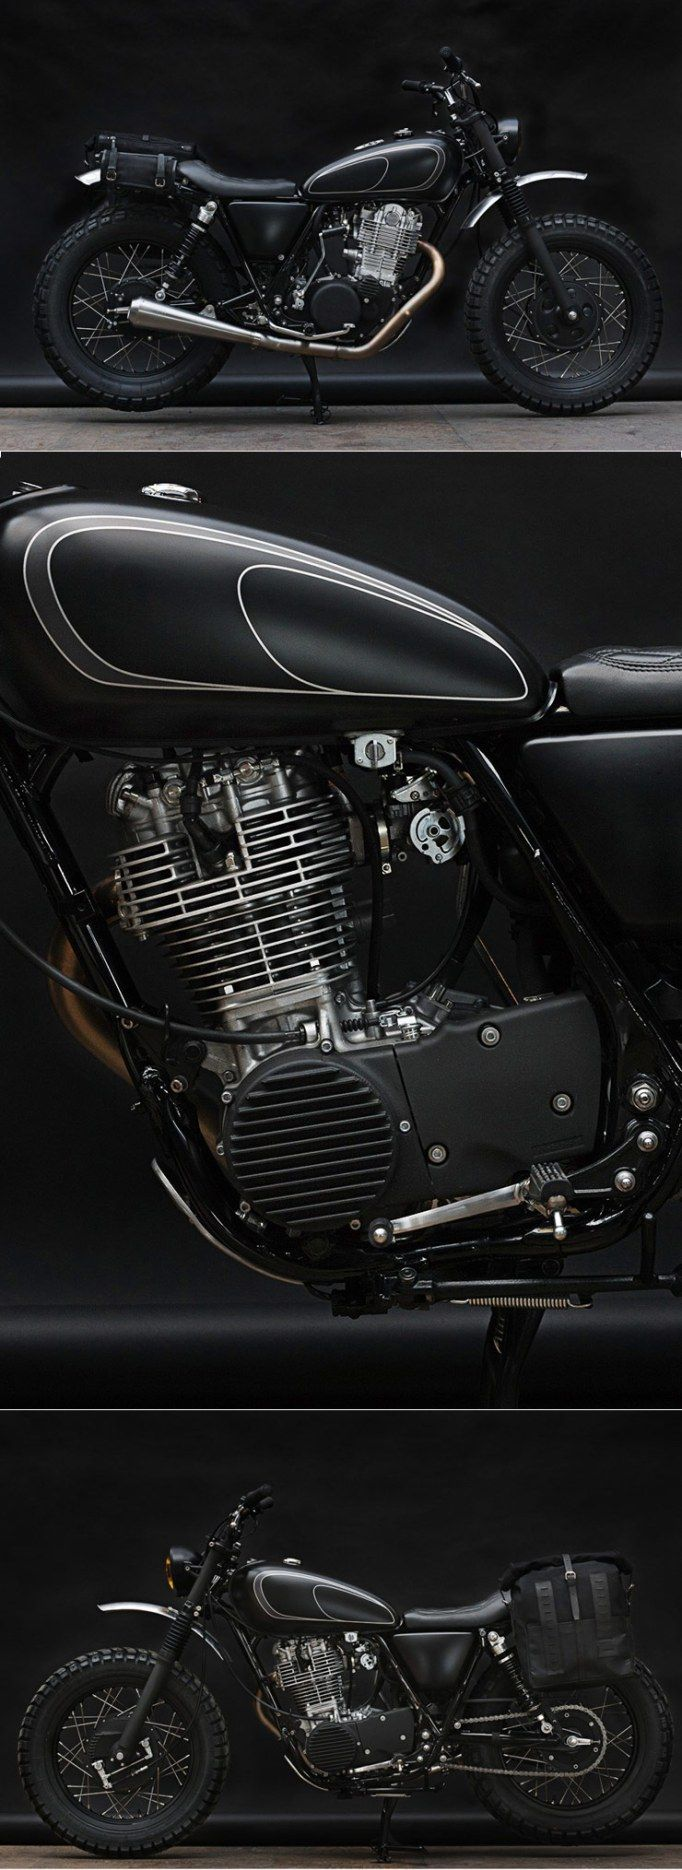 Wrenchmonkees Yamaha SR 400